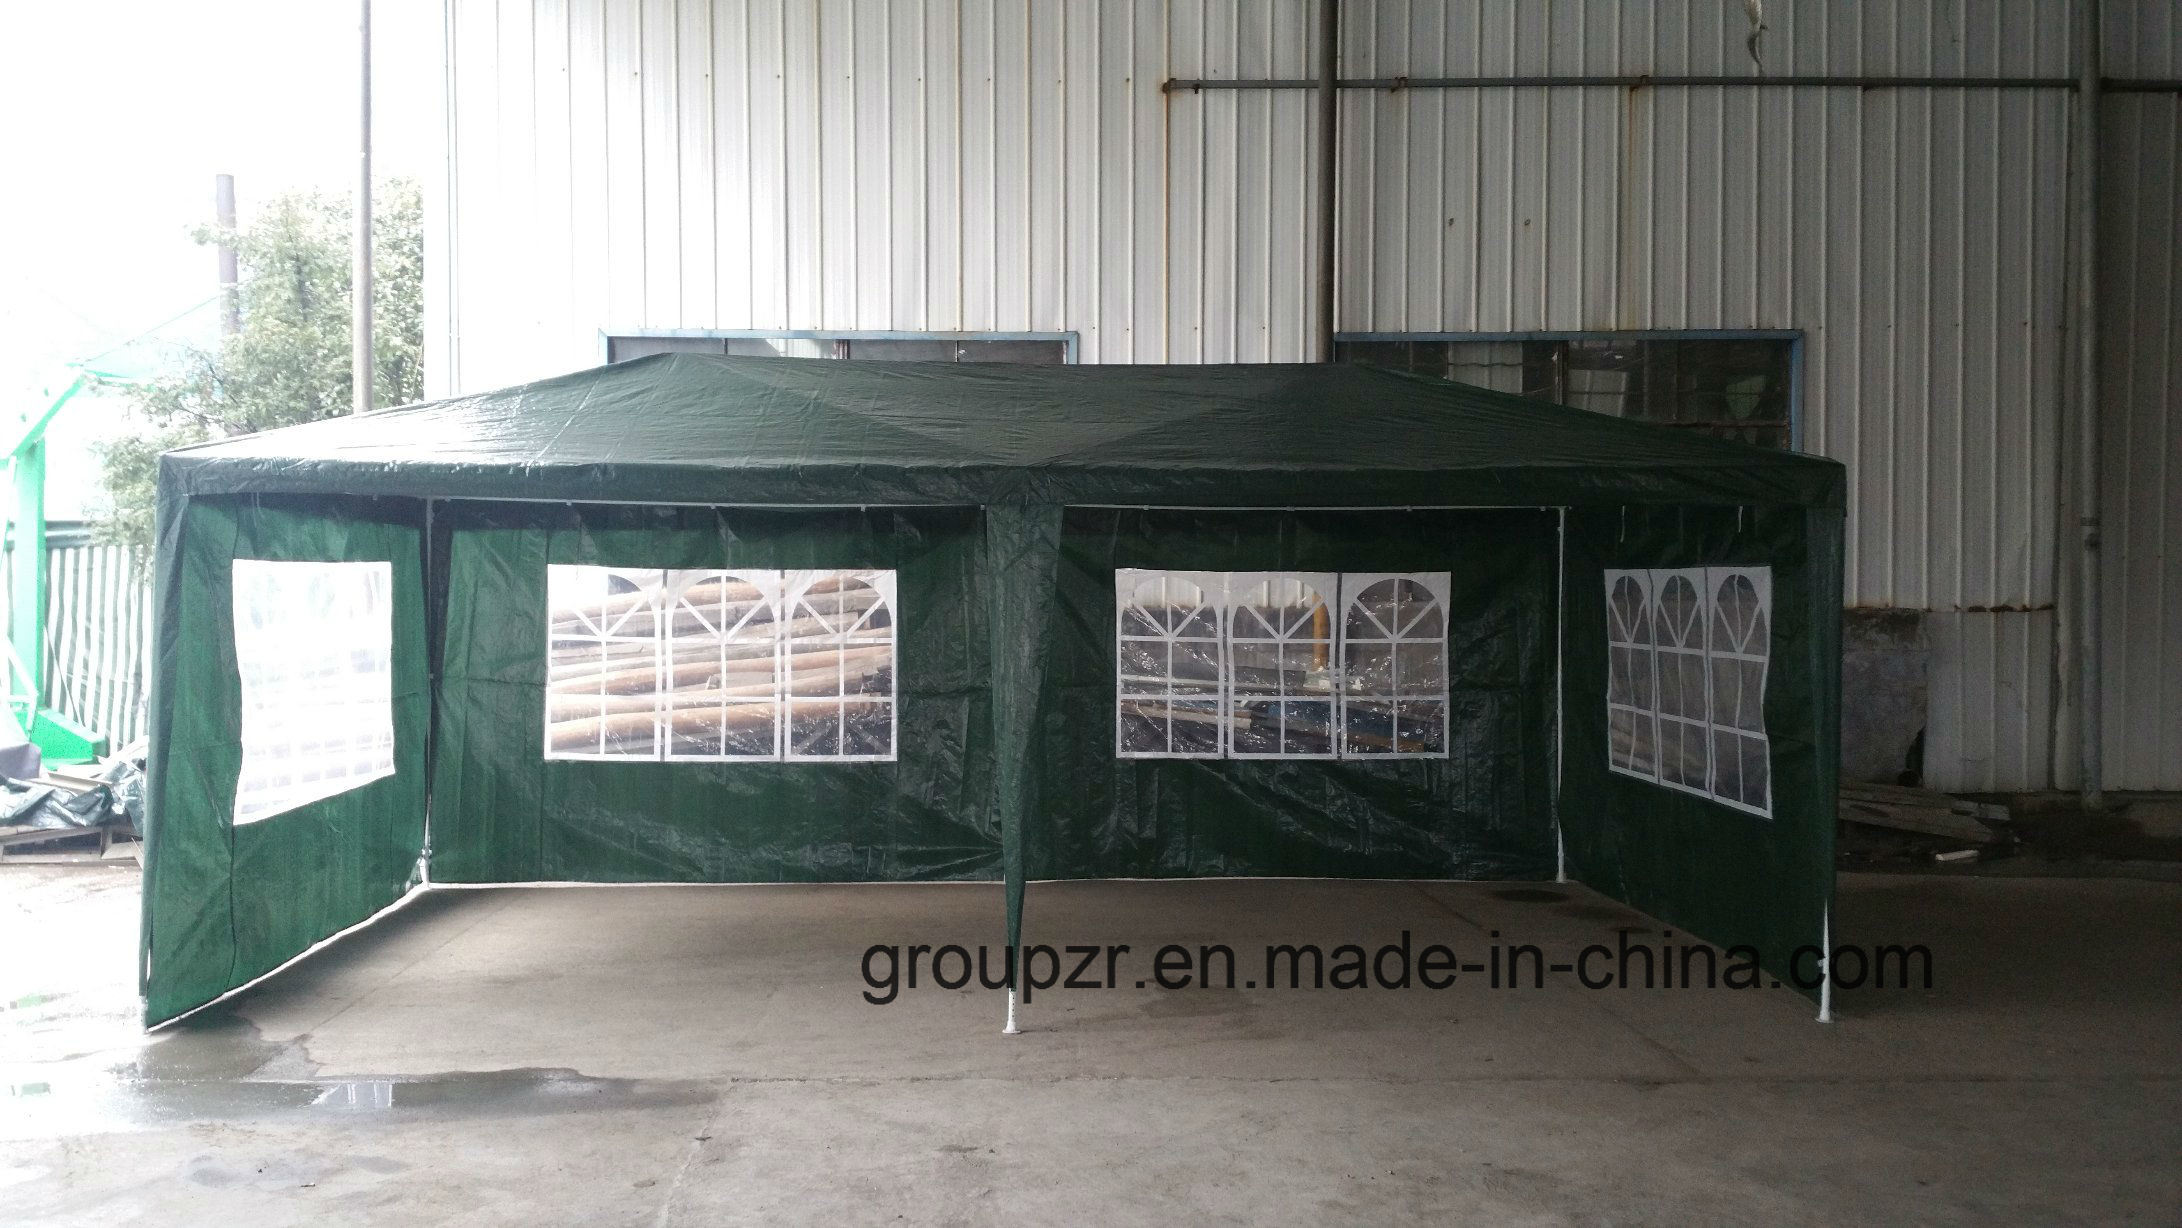 10X20 Assembly Steel Gazebo Party Tent Outdoor Canopy